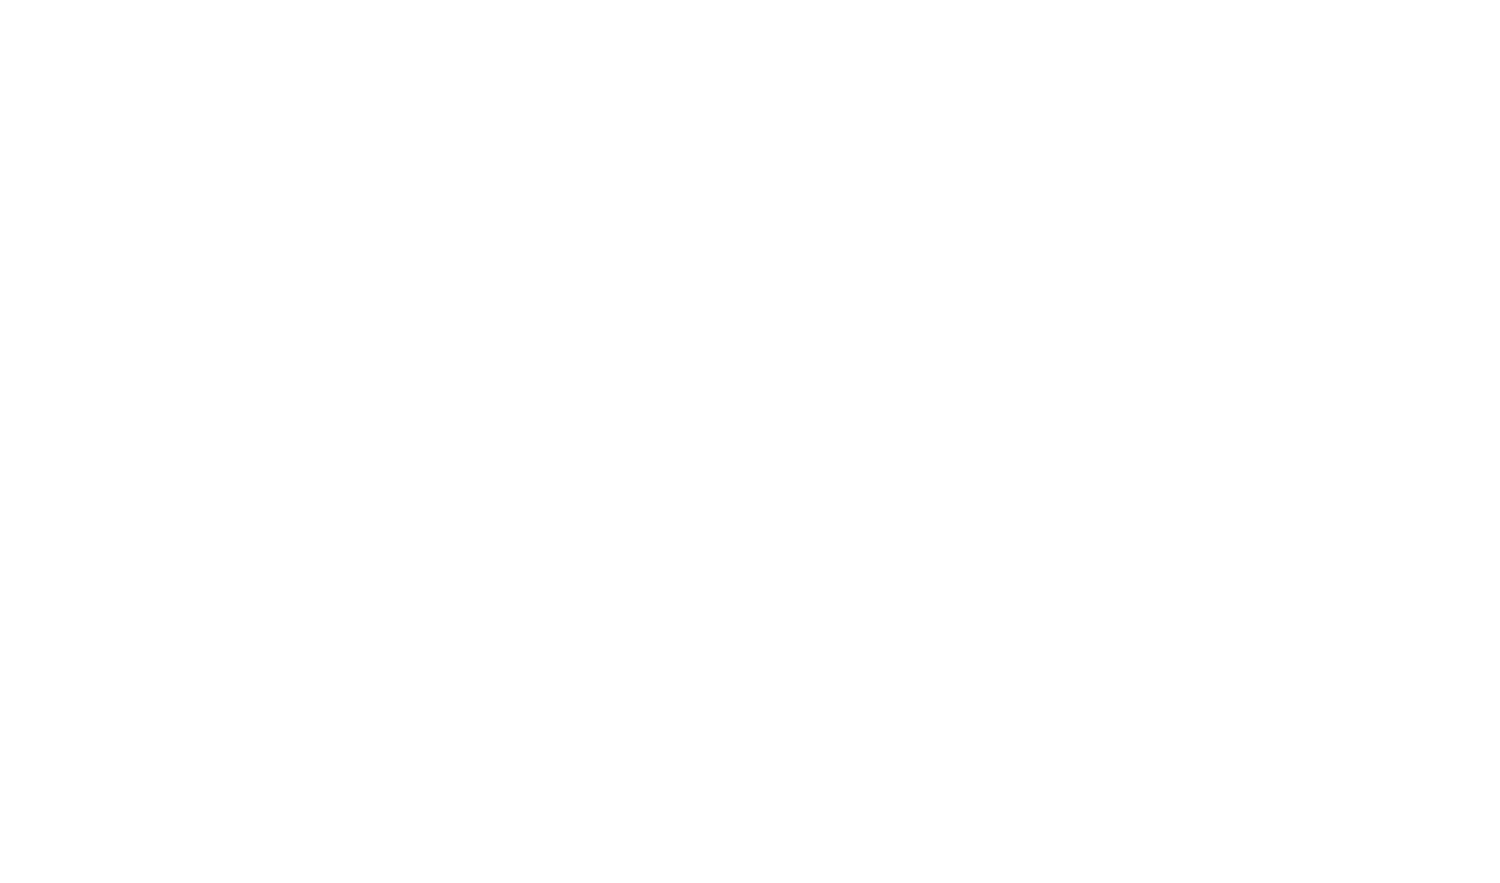 The Power of Light Institute